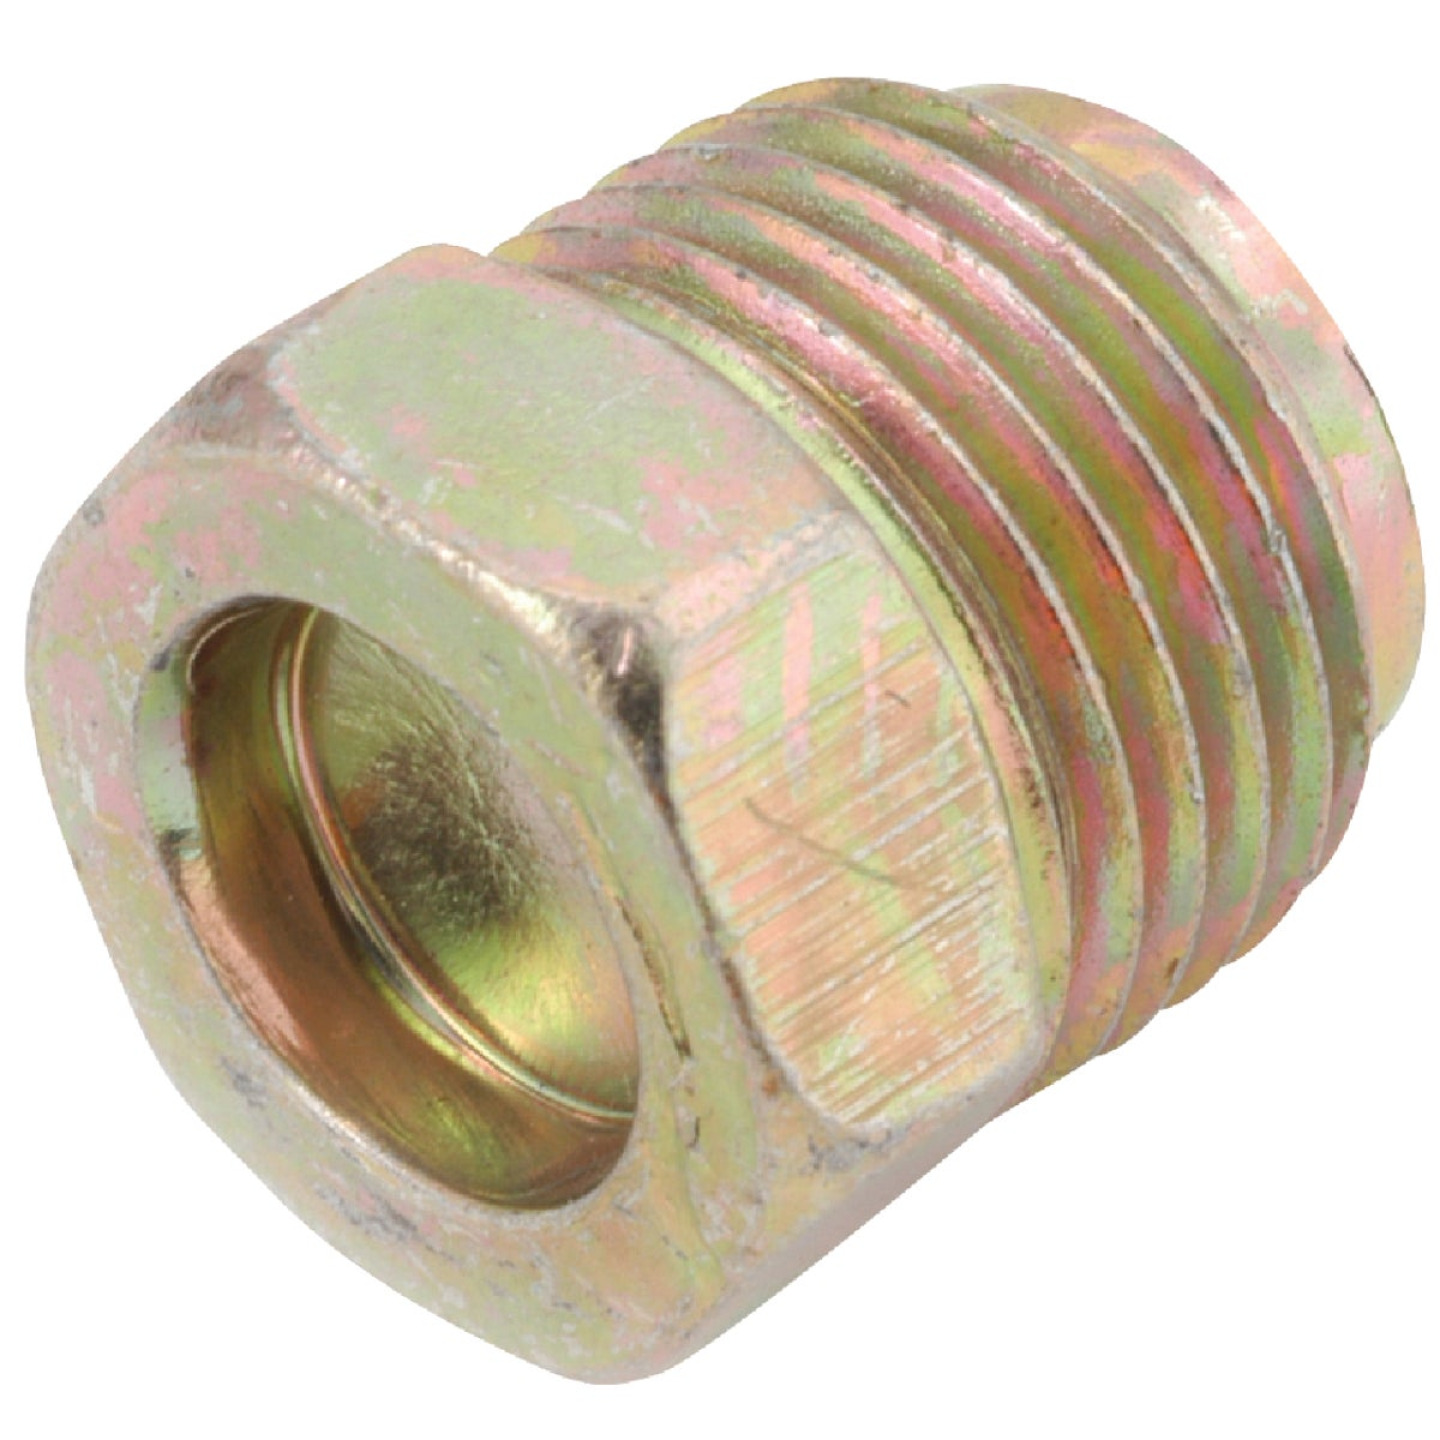 Anderson Metals 3/16 In. Brass Inverted Flare Plug Image 1